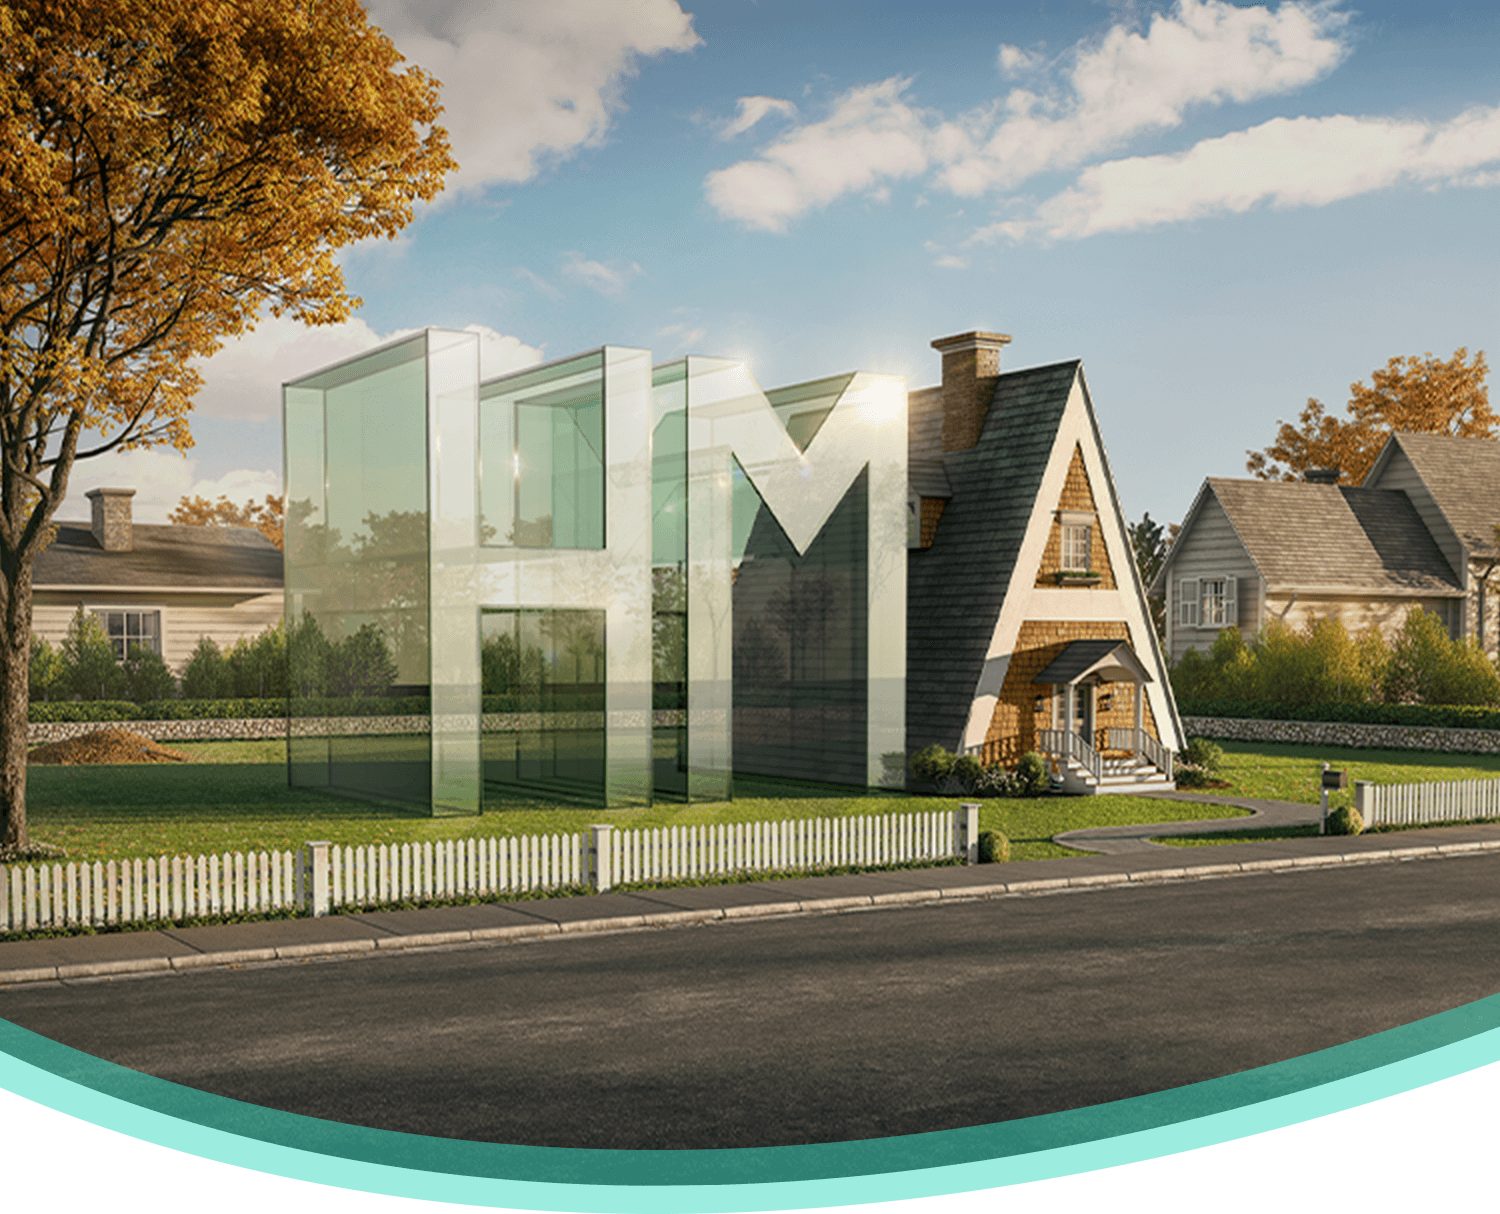 Capital letters HMA in a yard where the A has roof, chimney, and door to look like a home